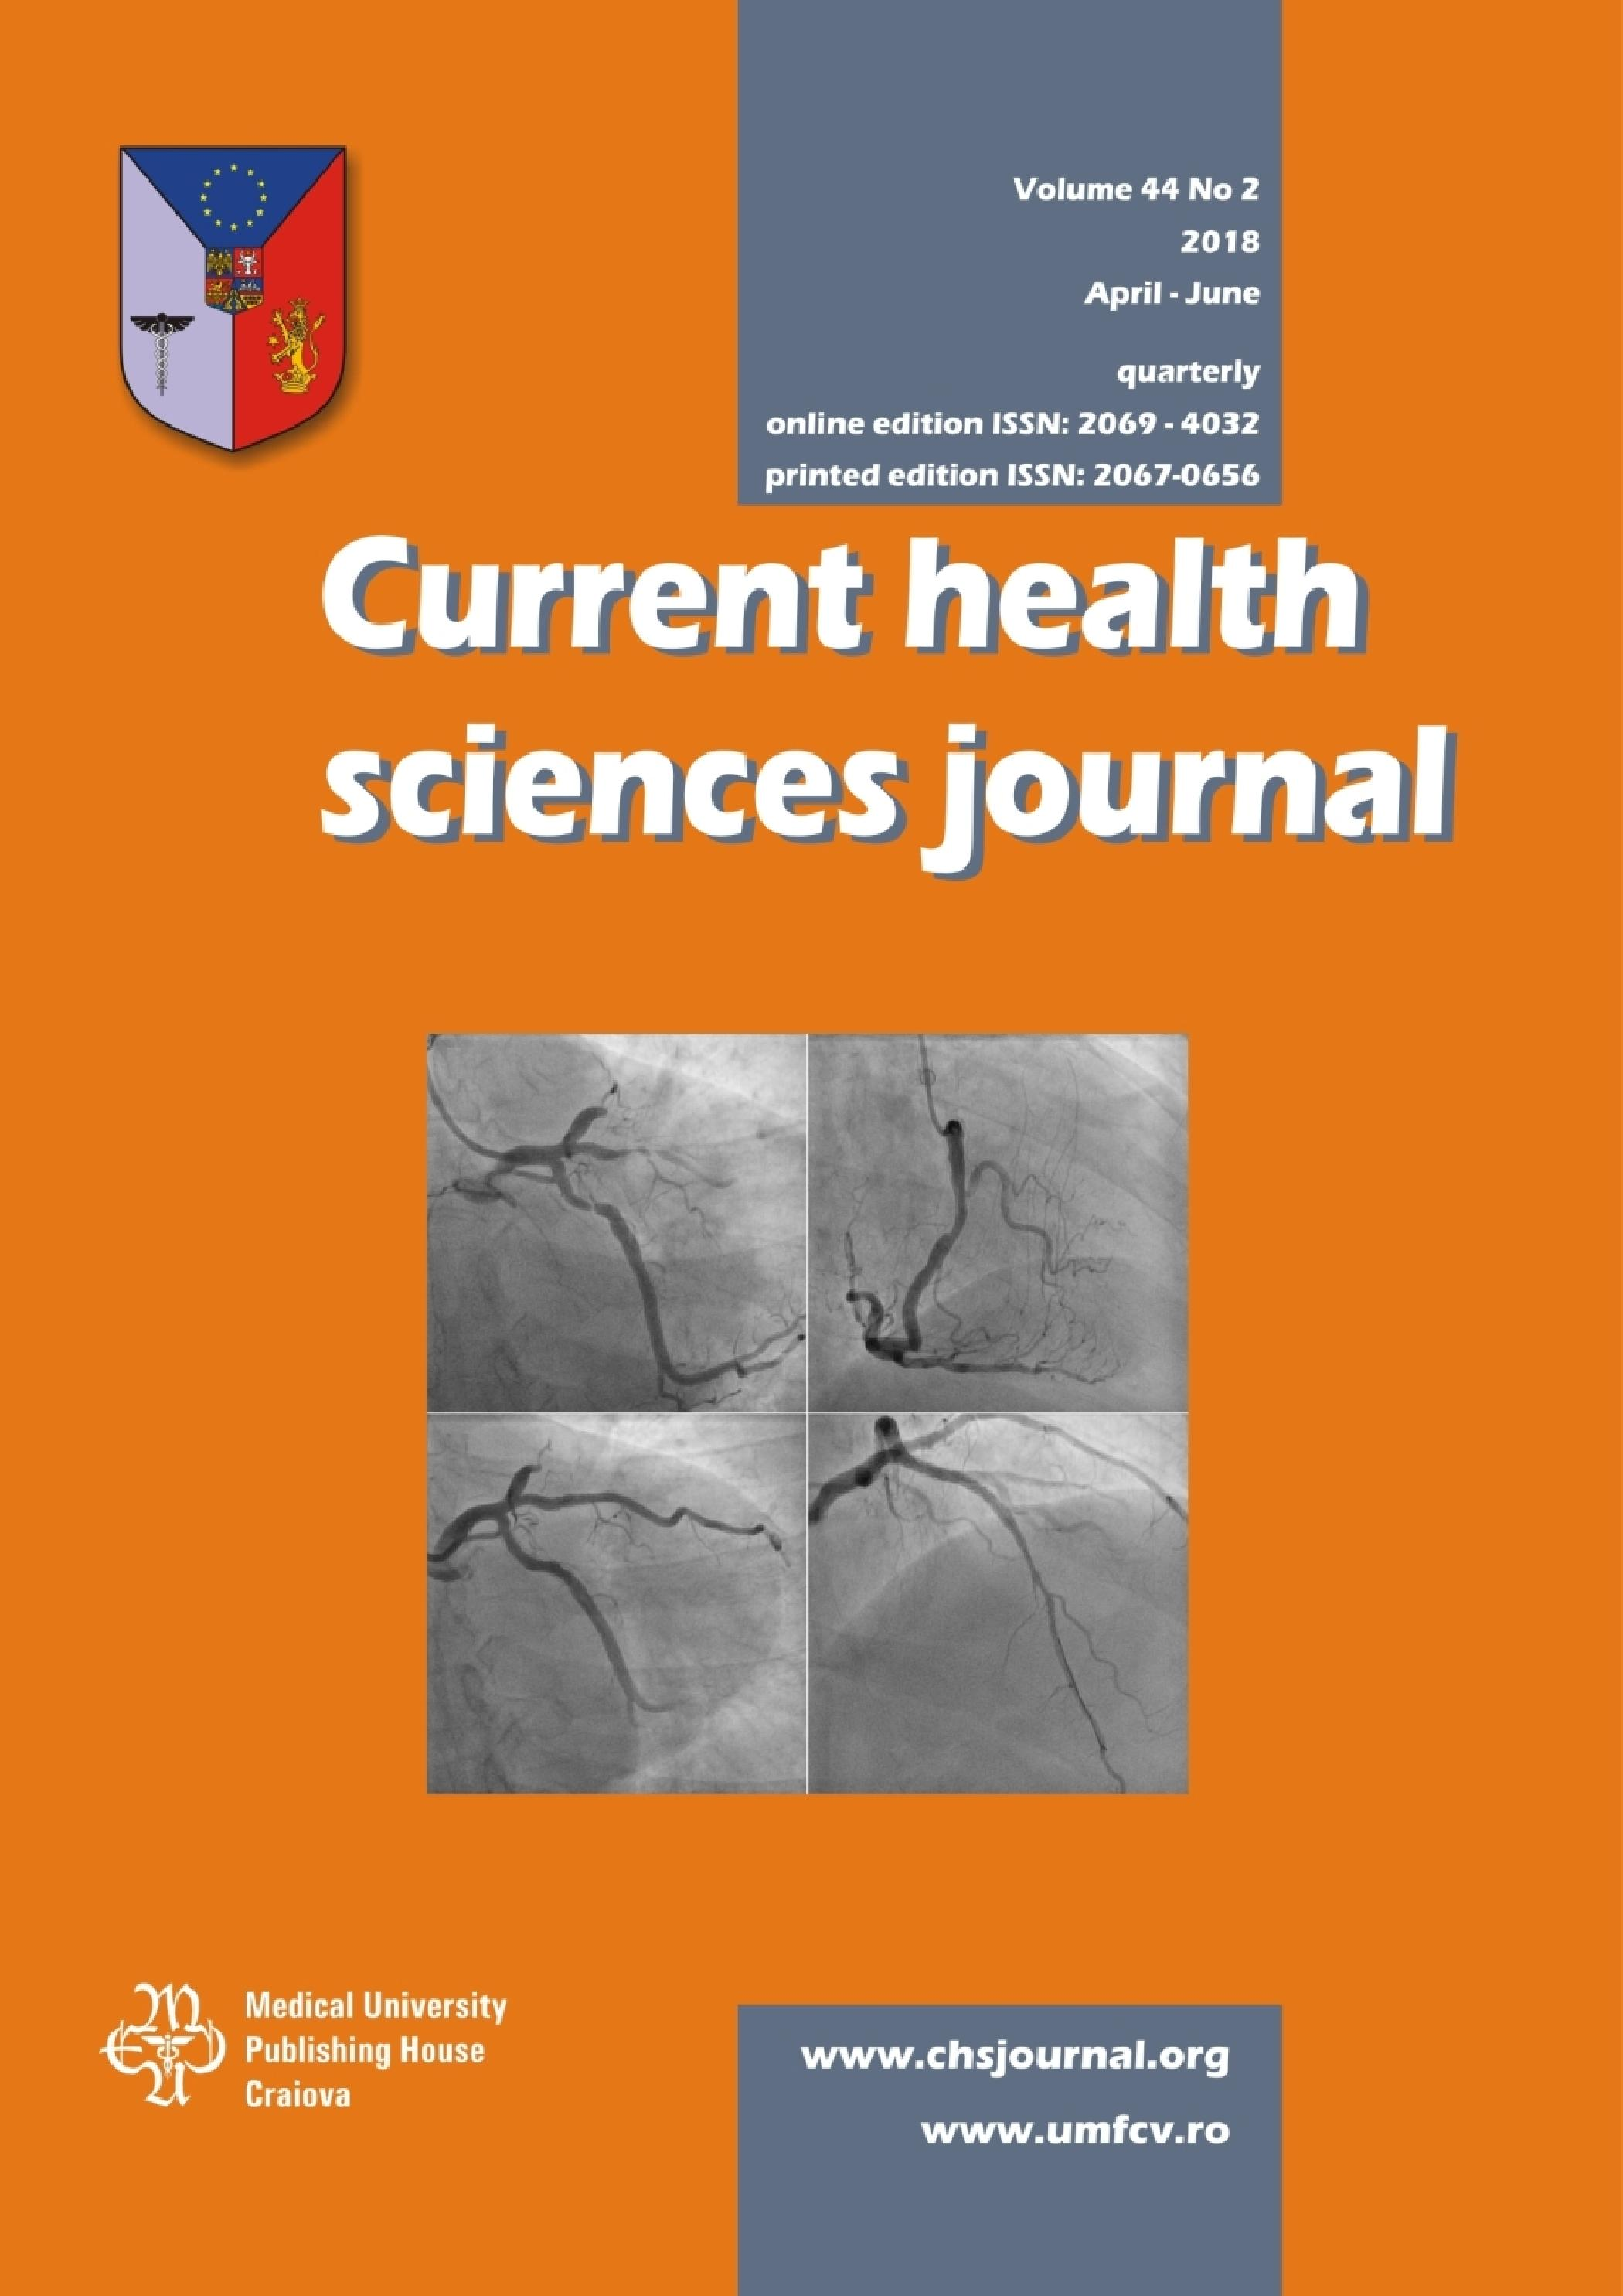 Current Health Sciences Journal, vol. 44 no. 2, 2018